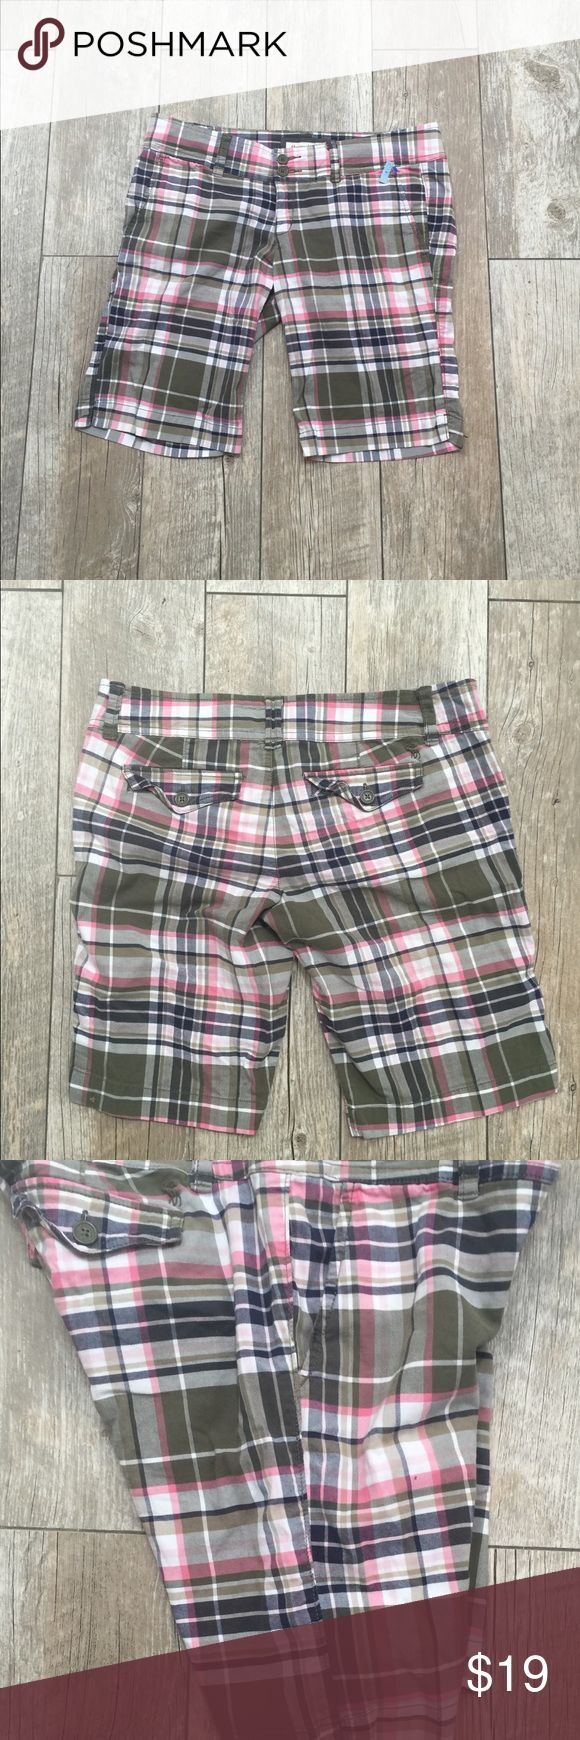 Abercrombie and Fitch Women's Shorts A & F Bermuda Short size 4. Classic plaid. Abercrombie & Fitch Shorts Bermudas